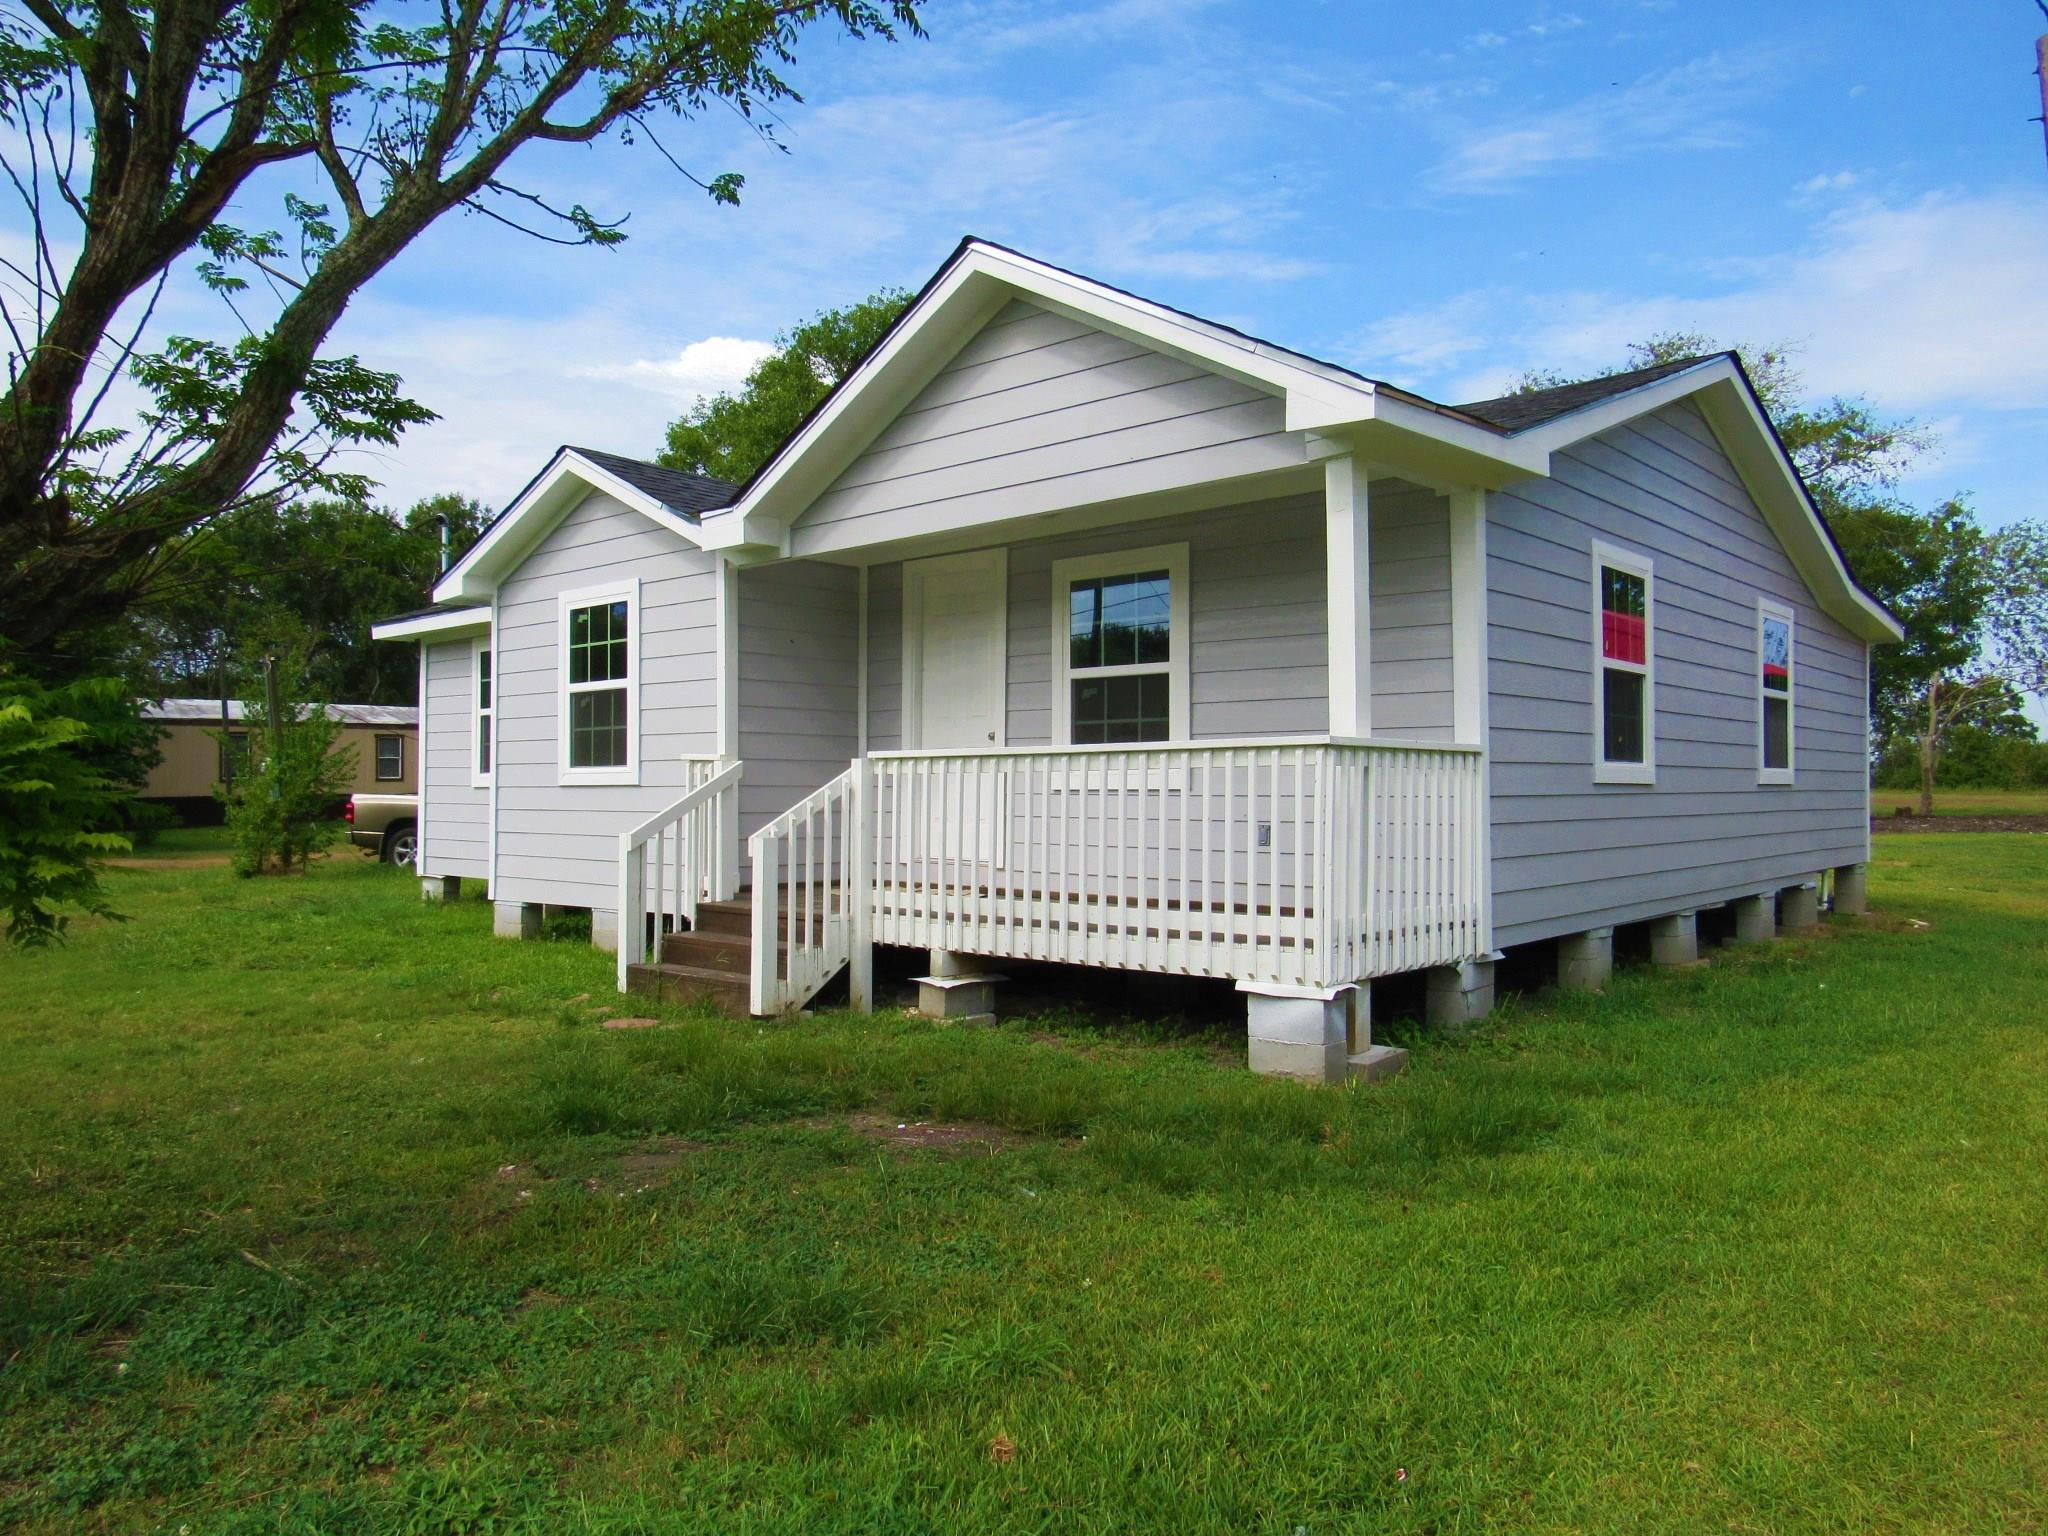 7607 Habermacher Street Property Photo - Hungerford, TX real estate listing